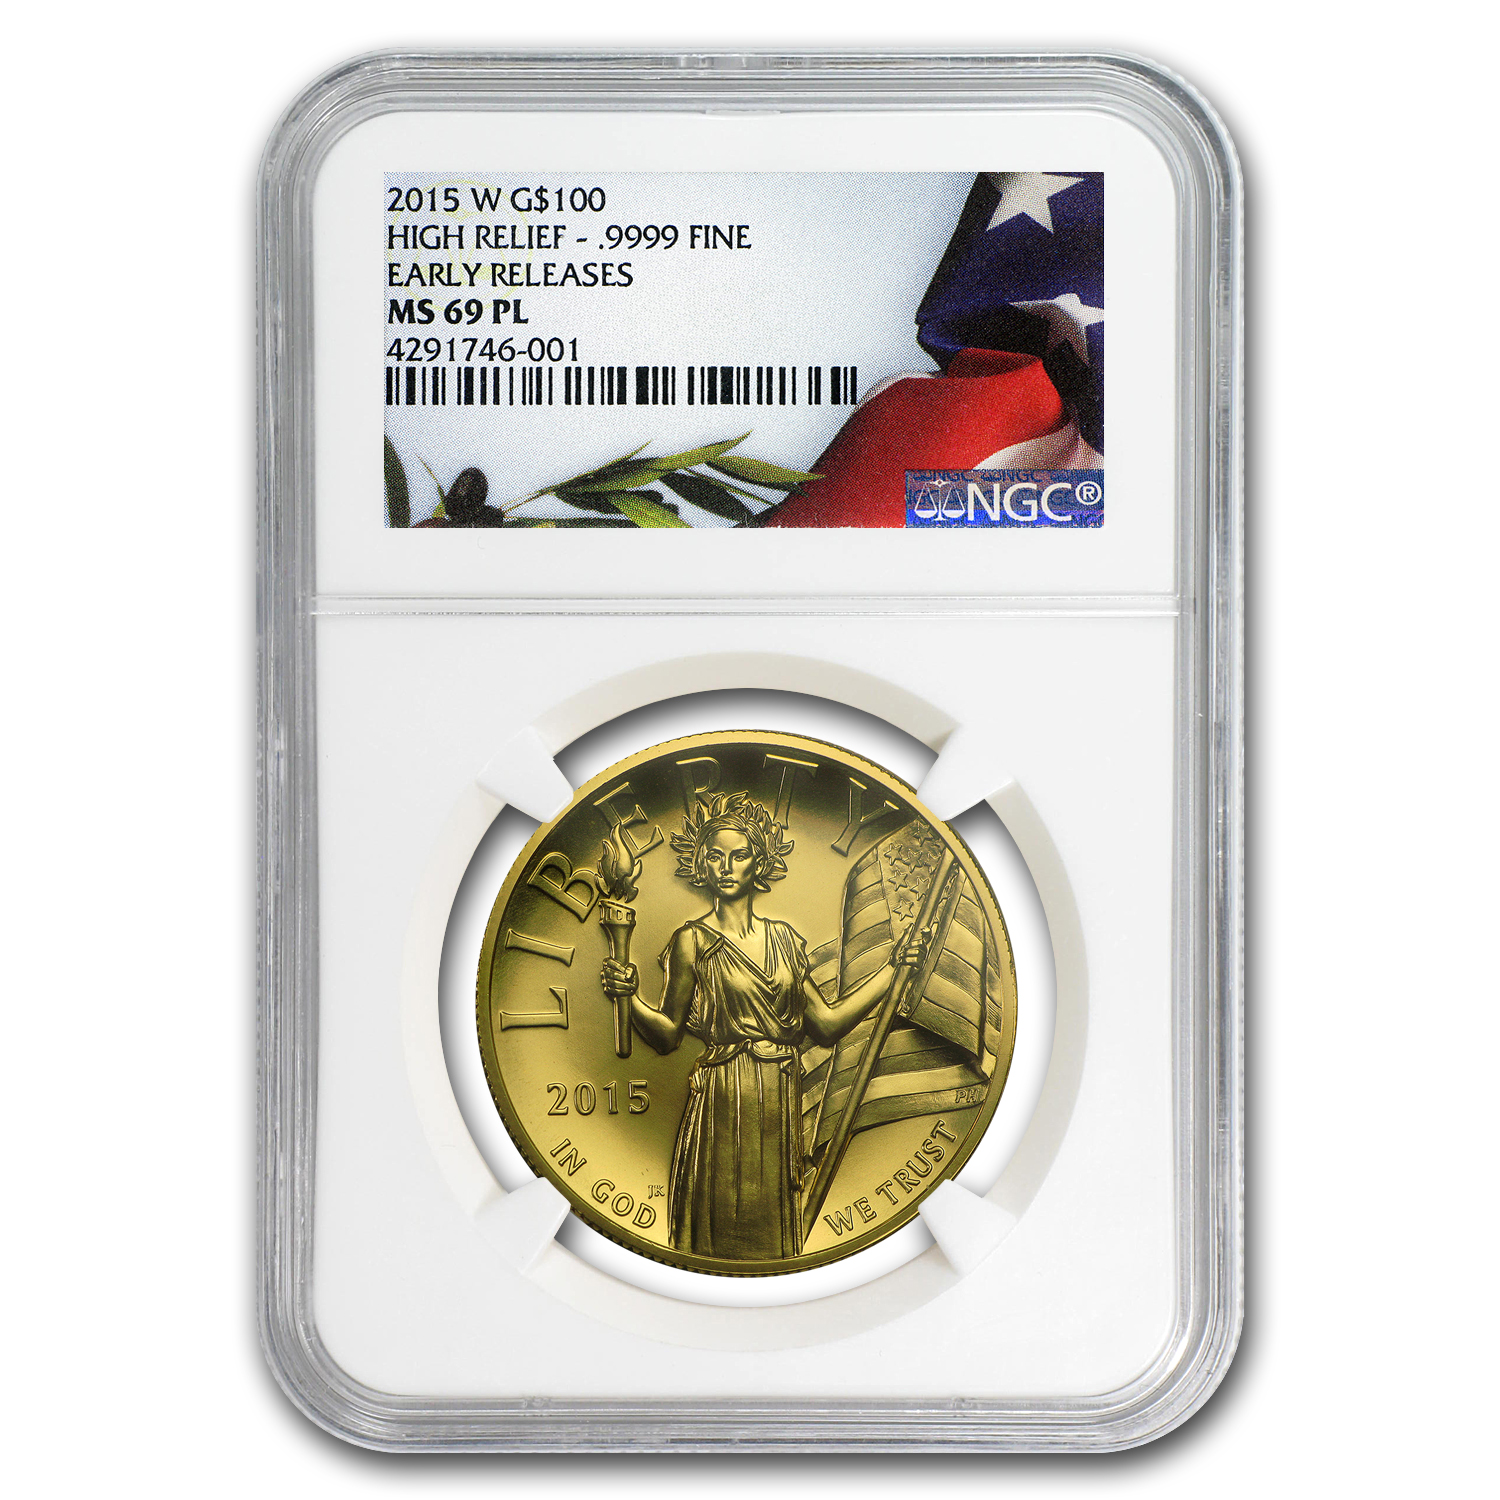 2015 American Liberty High Relief NGC MS-69 PL (Early Releases)